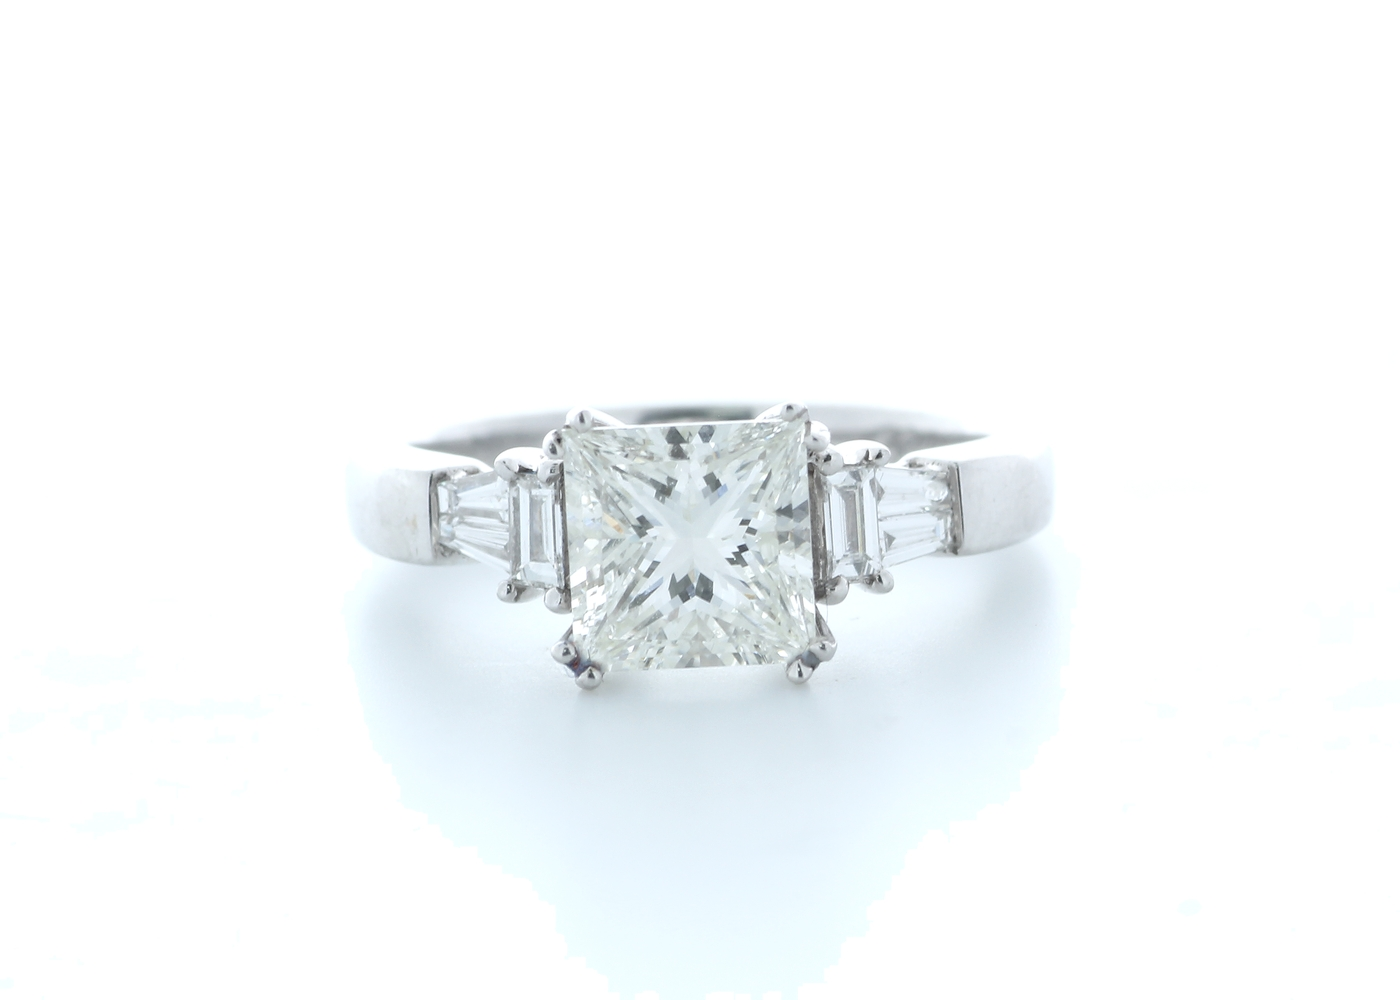 18ct White Gold Princess Cut With Stone Set Shoulders Diamond Ring 1.66 (1.51) Carats